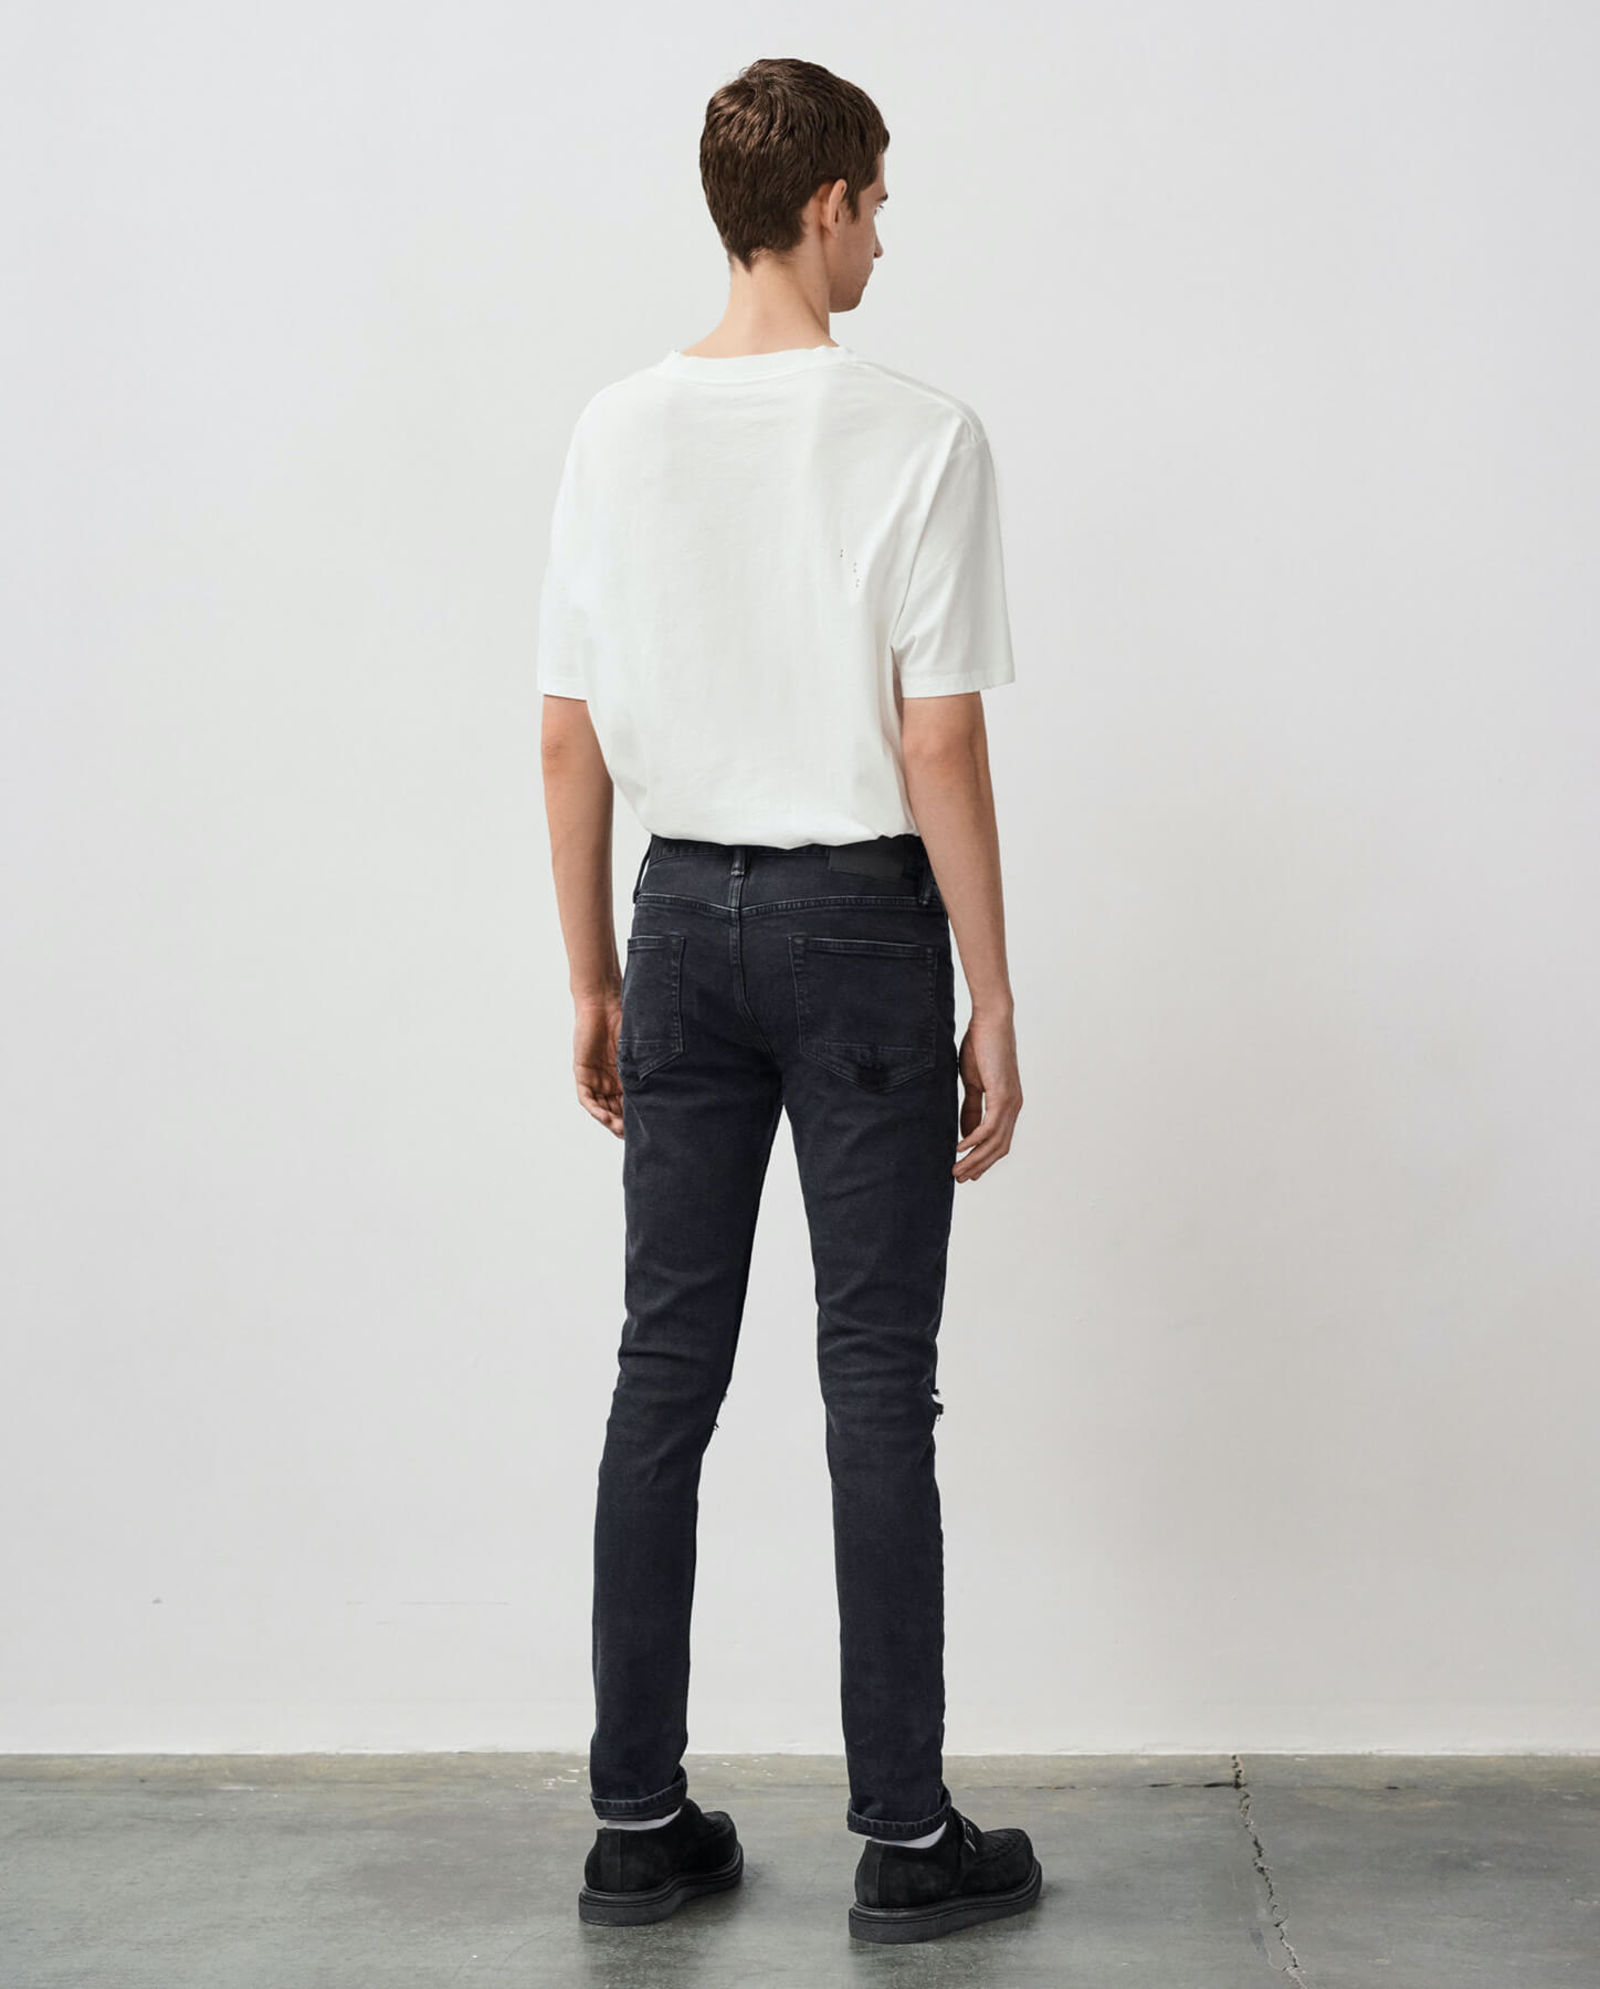 Discover our Cigarette jeans.